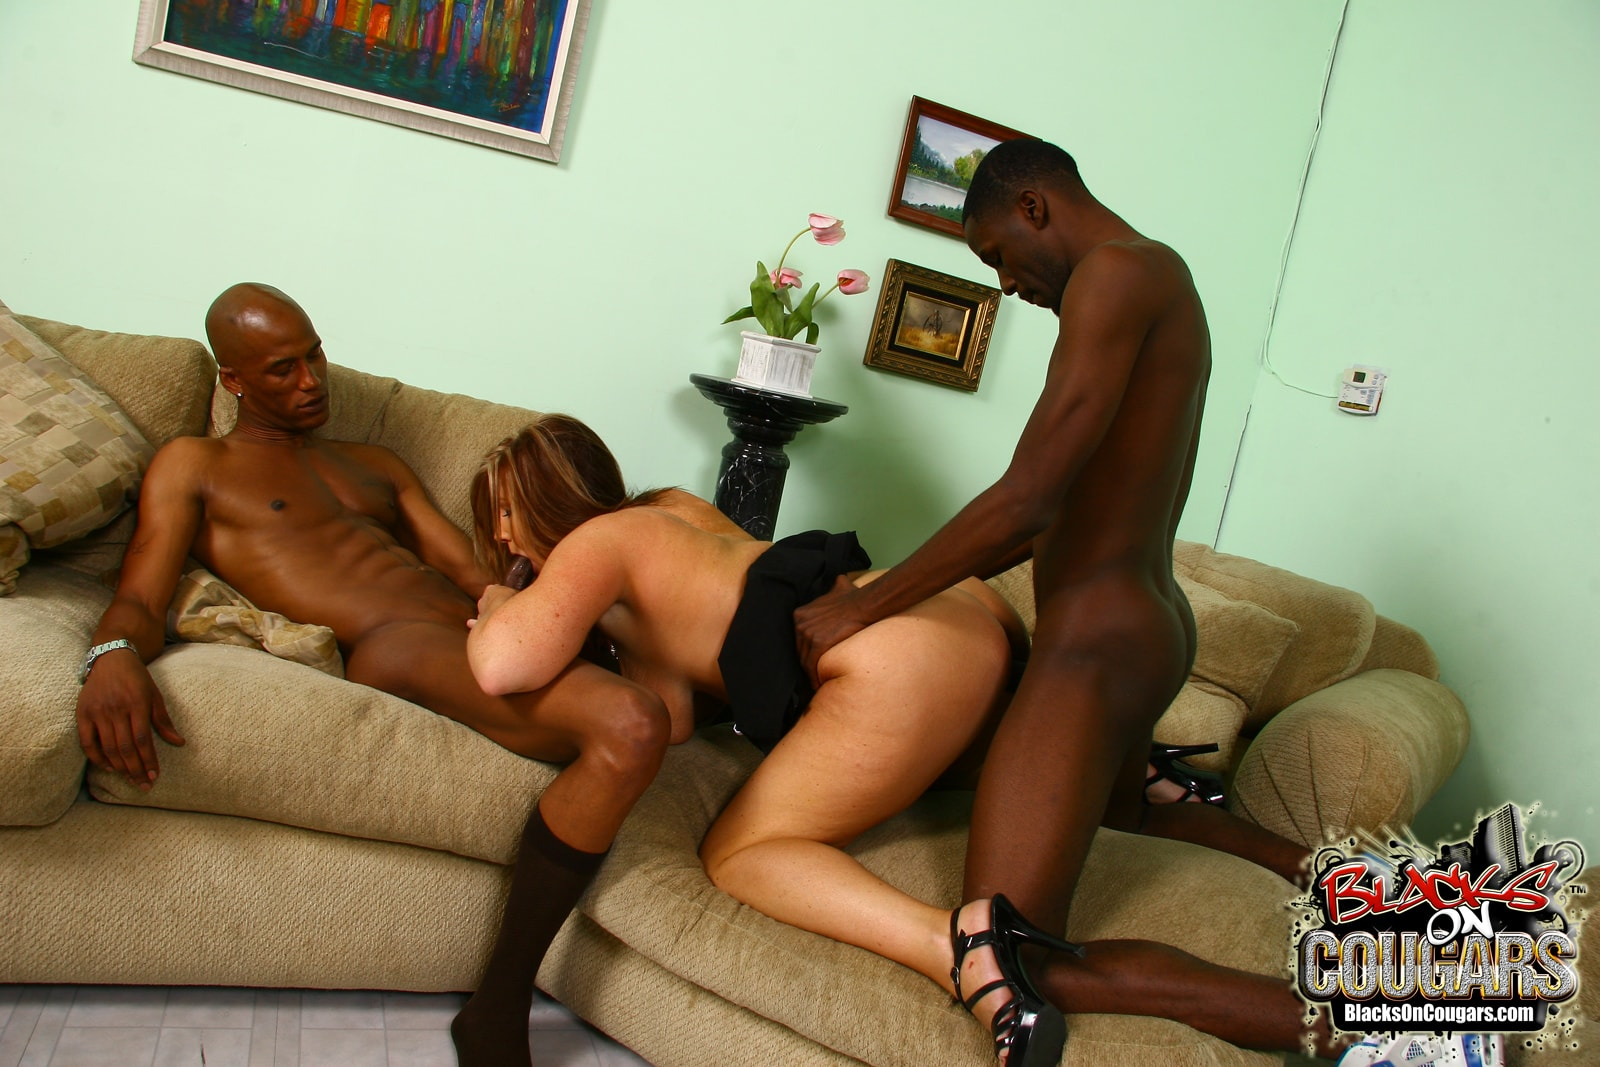 Dogfart '- Blacks On Cougars' starring Zoey Andrews (Photo 18)